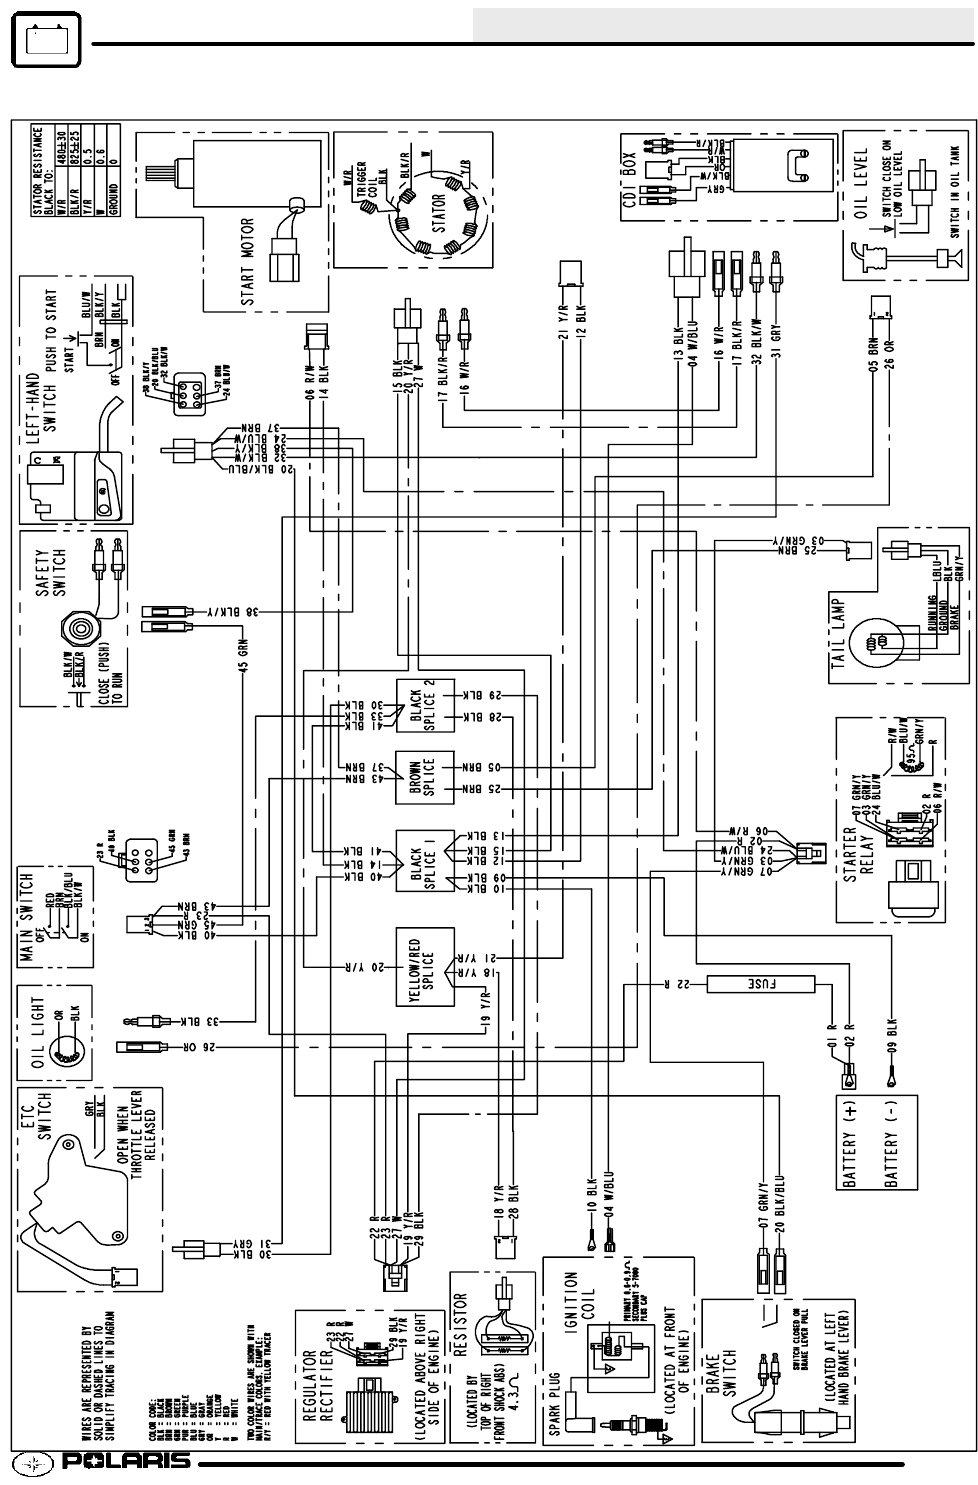 Polaris Sportsman 500 Wiring Diagram. Diagrams. Wiring